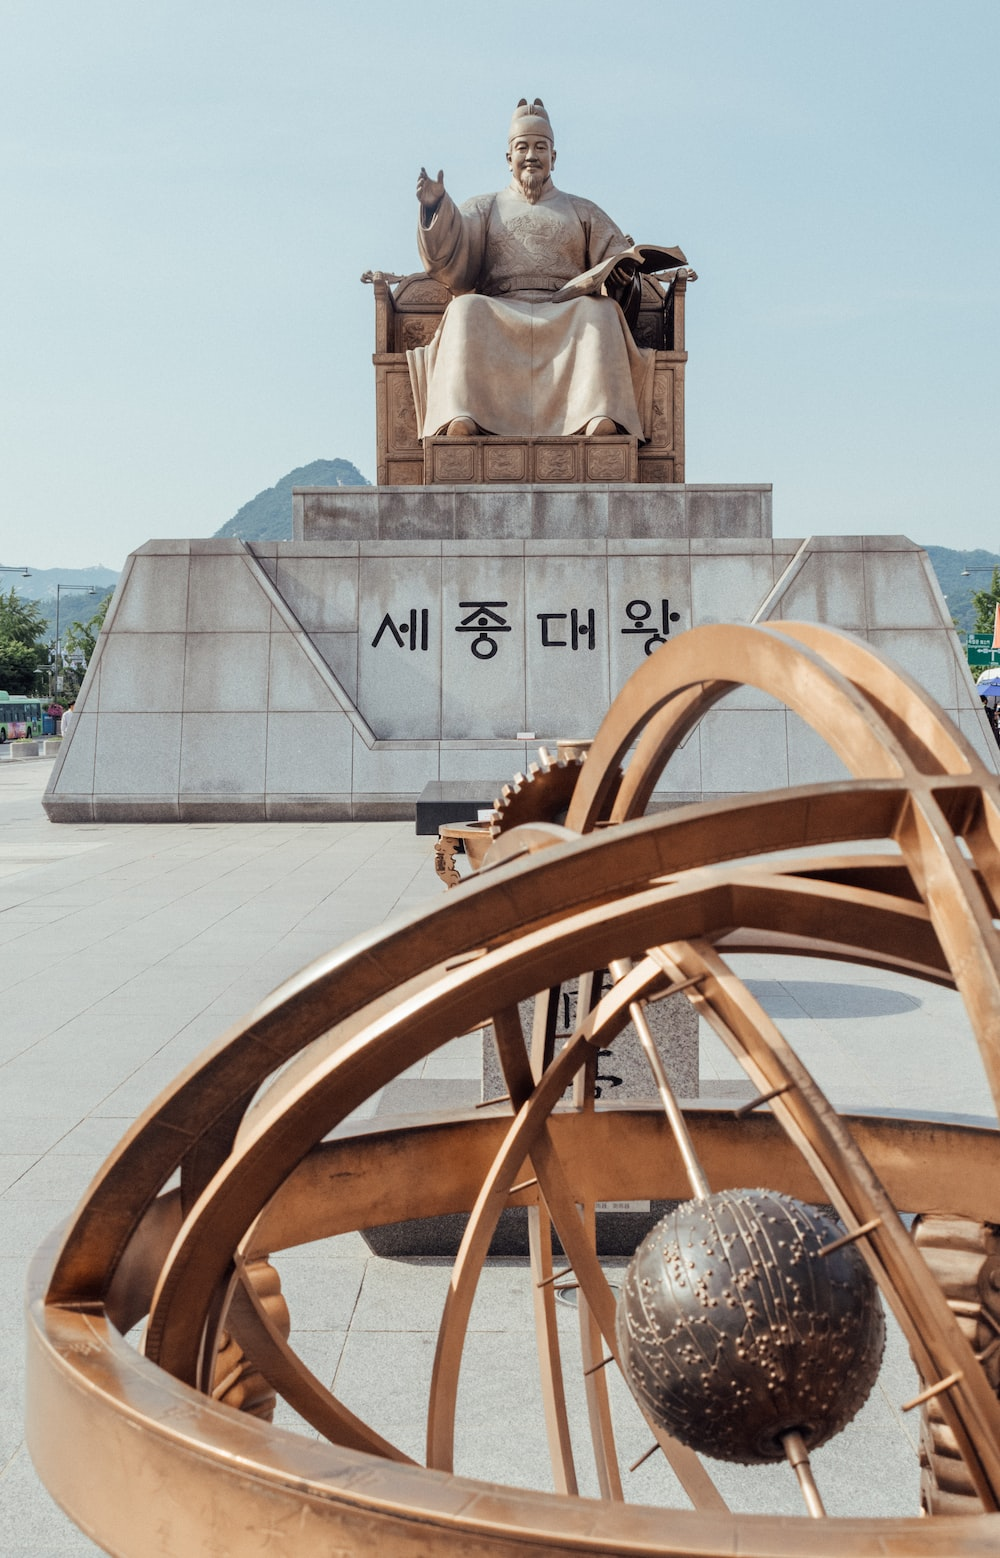 sitting human statue during day